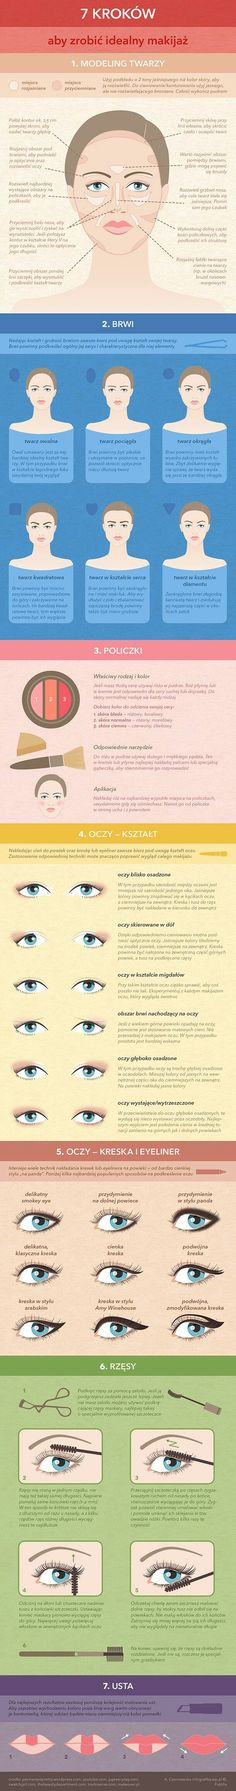 Make-up in a nutshell. Makeup Inspo, Makeup Inspiration, Beauty Makeup, Eye Makeup, Hair Beauty, Make Up Tricks, How To Make, Lipstick Tutorial, Essential Oils For Skin